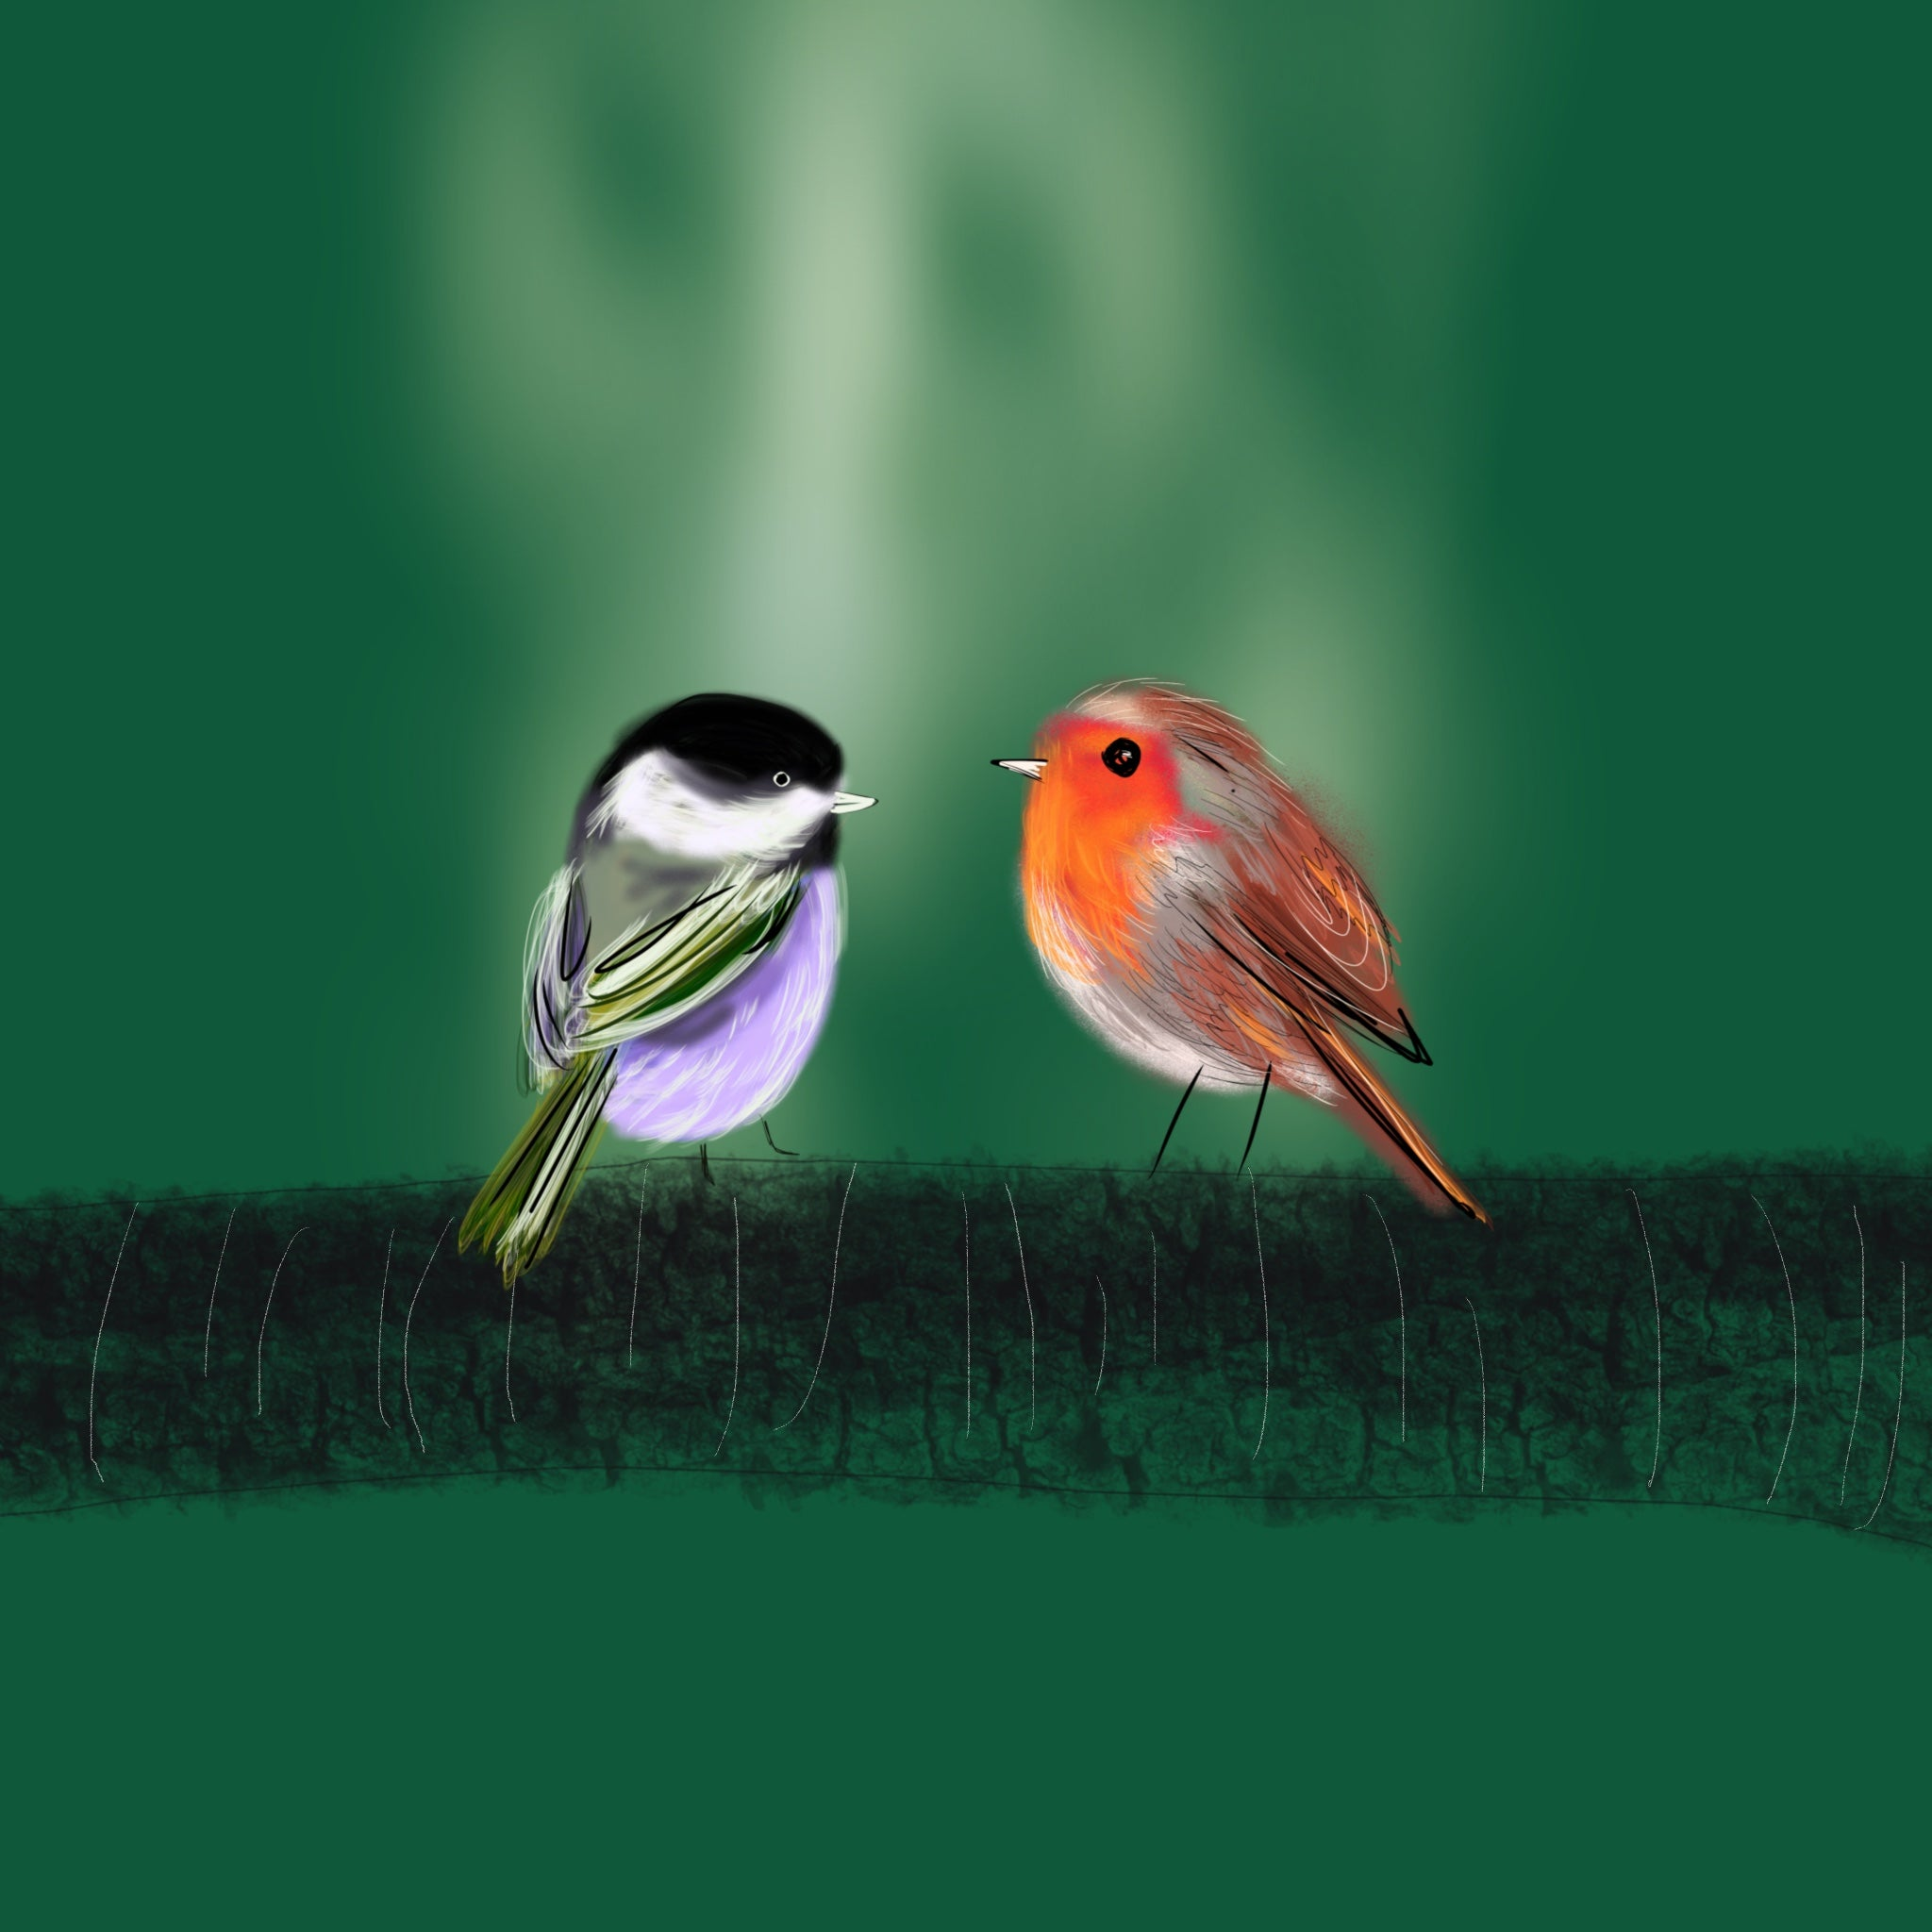 Two Birds christmas print, vibrant, original, John Lewis and Childrens' illustrator